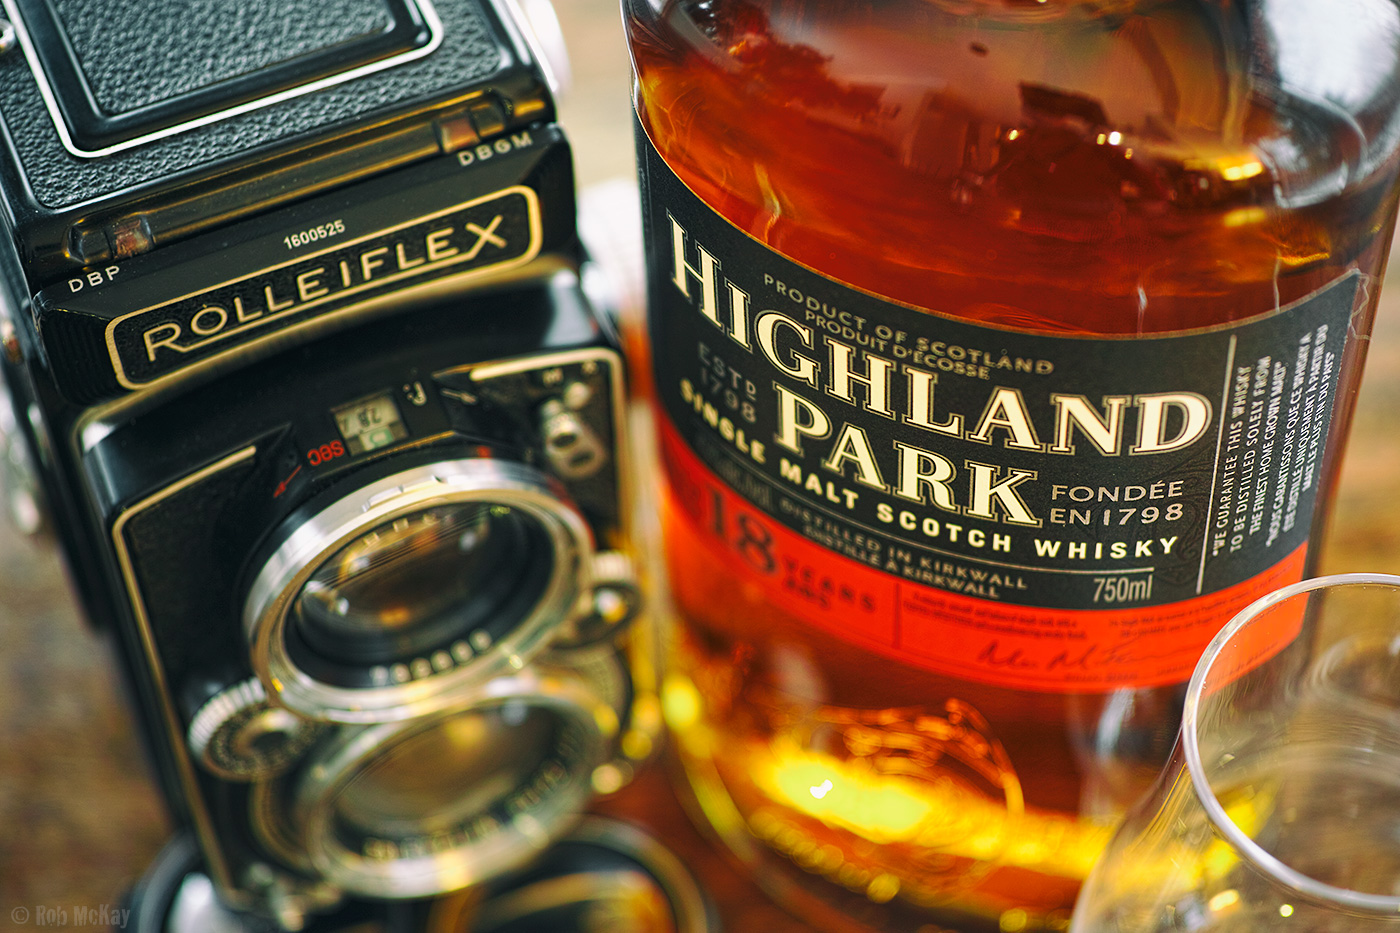 Classics, Highlandpark Whiskey & Rolleiflex Medium Format Camera